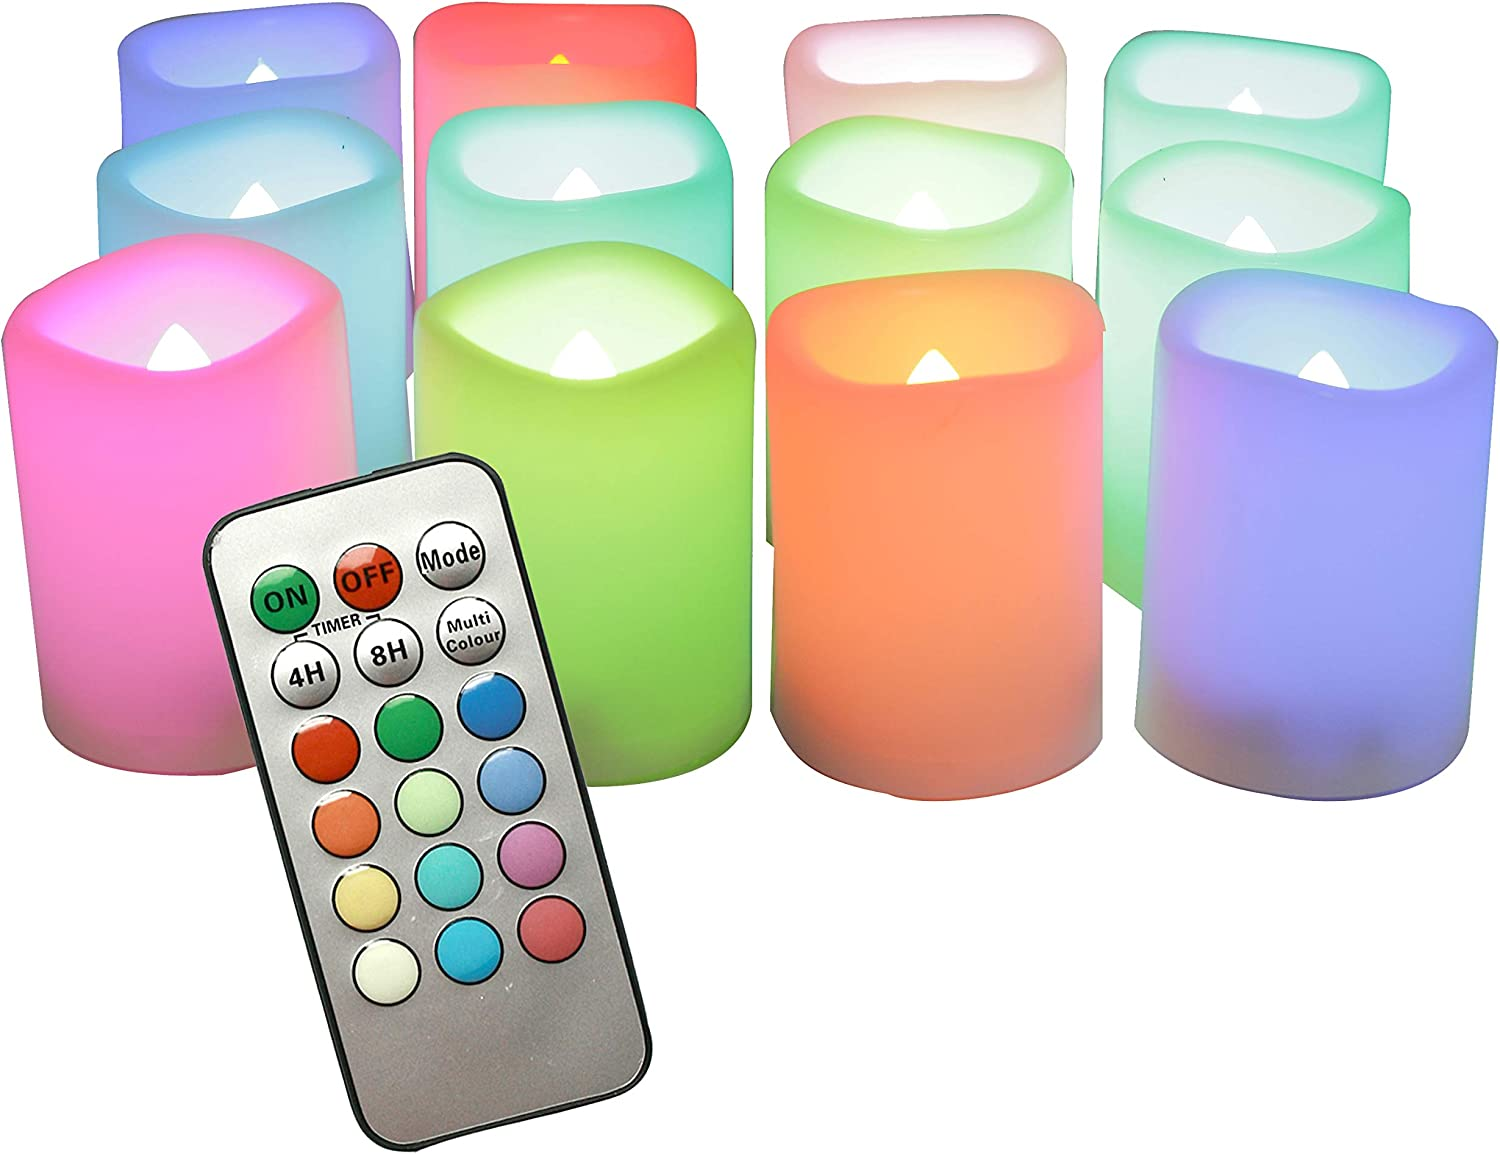 """iZAN 12PCS Multi Color Changing Flameless Battery Operated LED Votive Candles with Remote Flickering Electric votives for Halloween Christmas Home Party Wedding Decors 1.5""""x2"""" Batteries Included"""